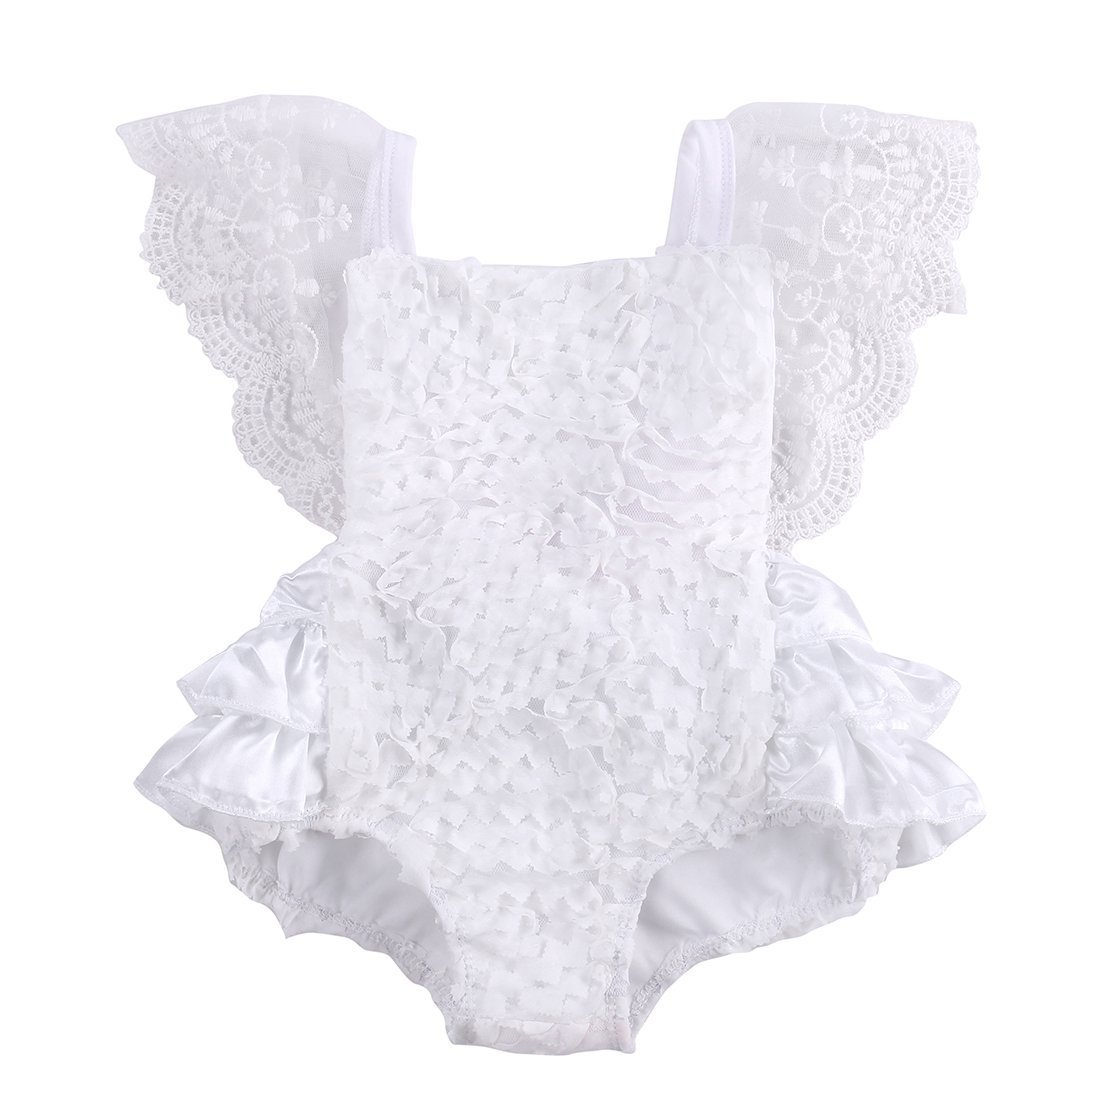 XiaoReddou Baby Infant Girl Pure White Pretty Lace Floral Princess Party Dress Romper (White, 12-18 Months)